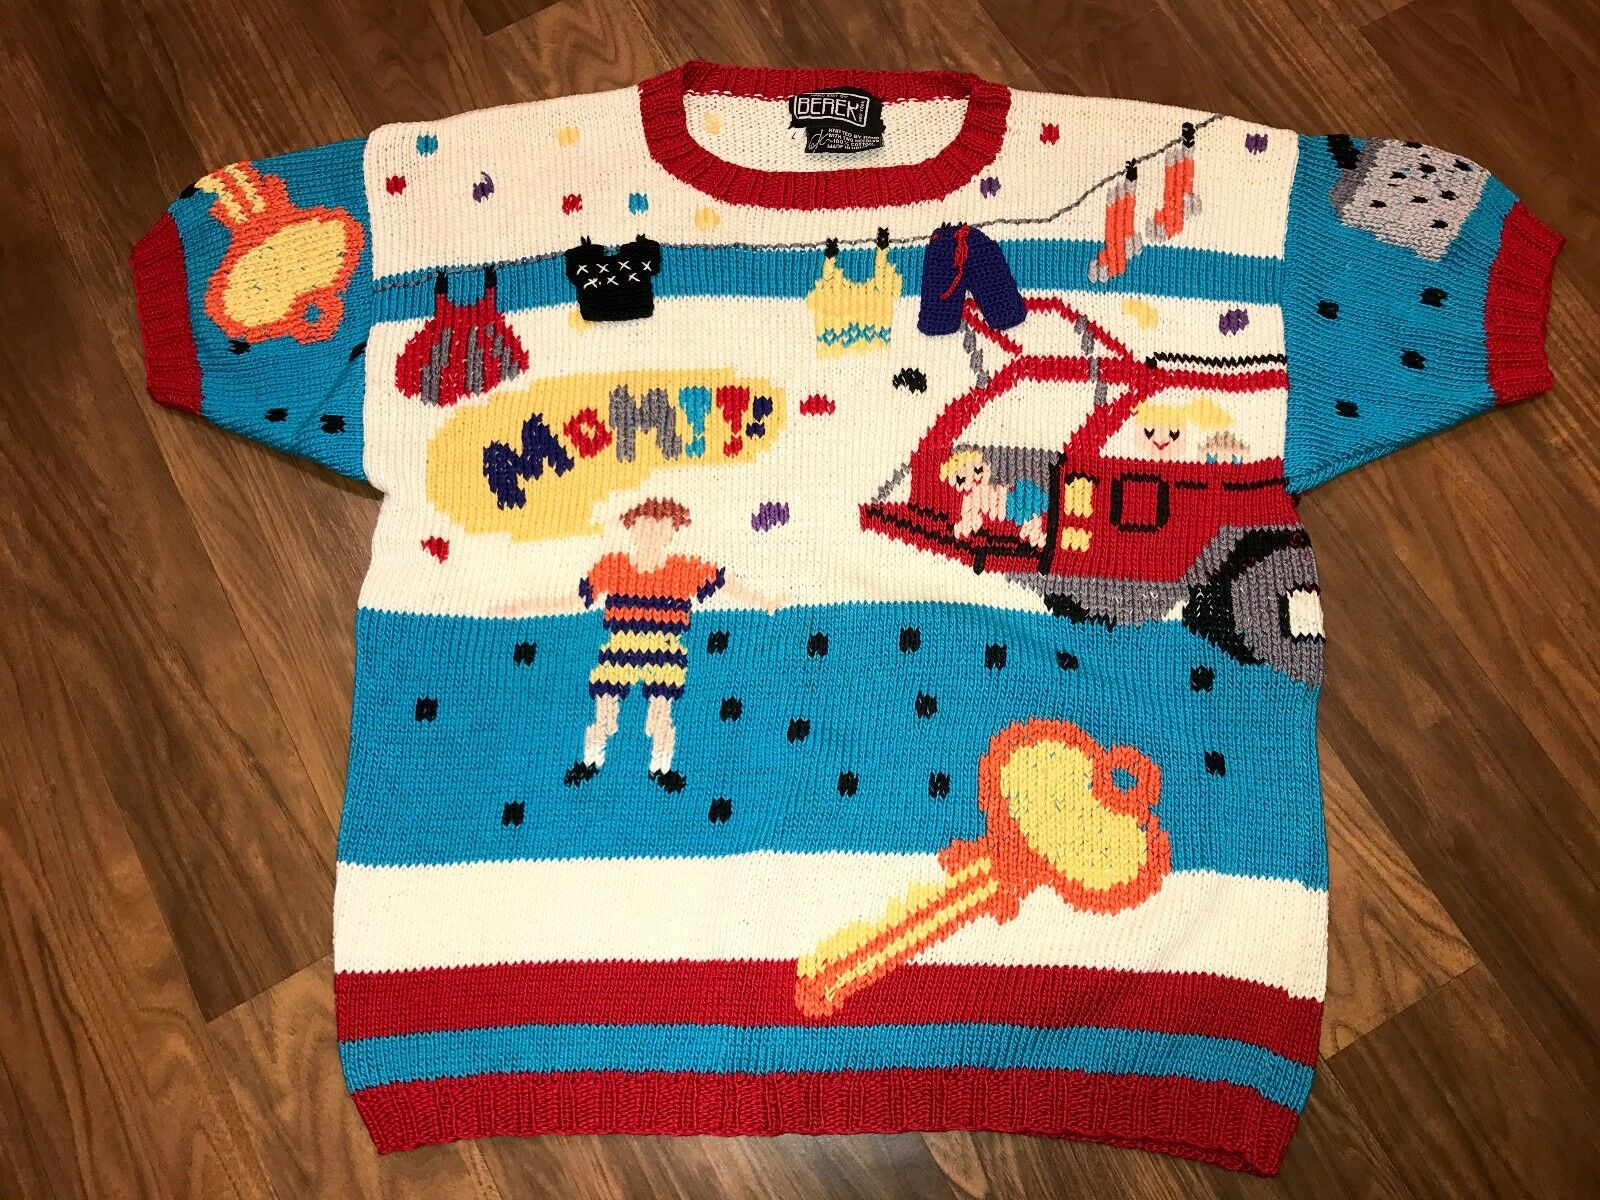 Berek MOM Sweater LARGE Car Key Iron Collectible ugly Vtg 80s 90s S S Top Shirt